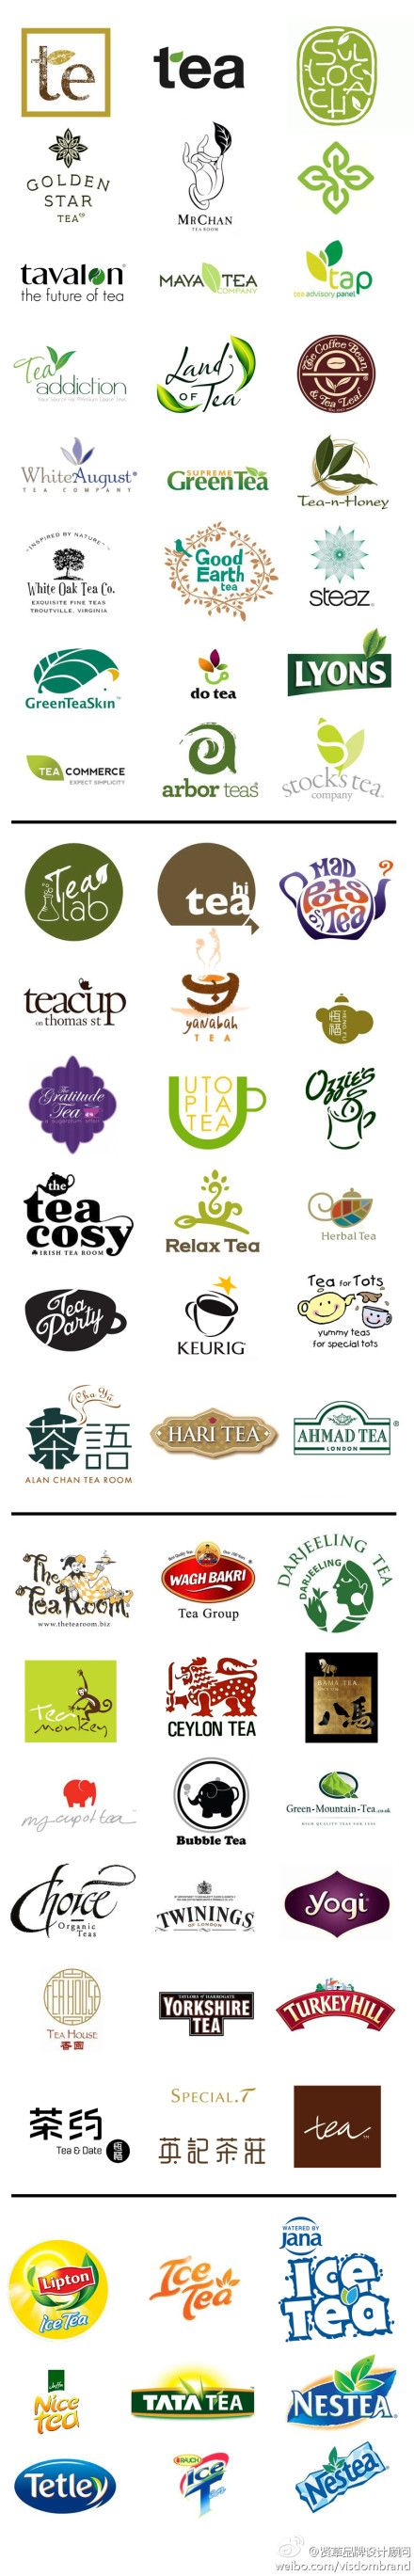 logos of TEA Curated By Transition Marketing Services Visit Us: http:www.transitionmarketing.ca Okanagan Small Business Branding & Marketing Solutions